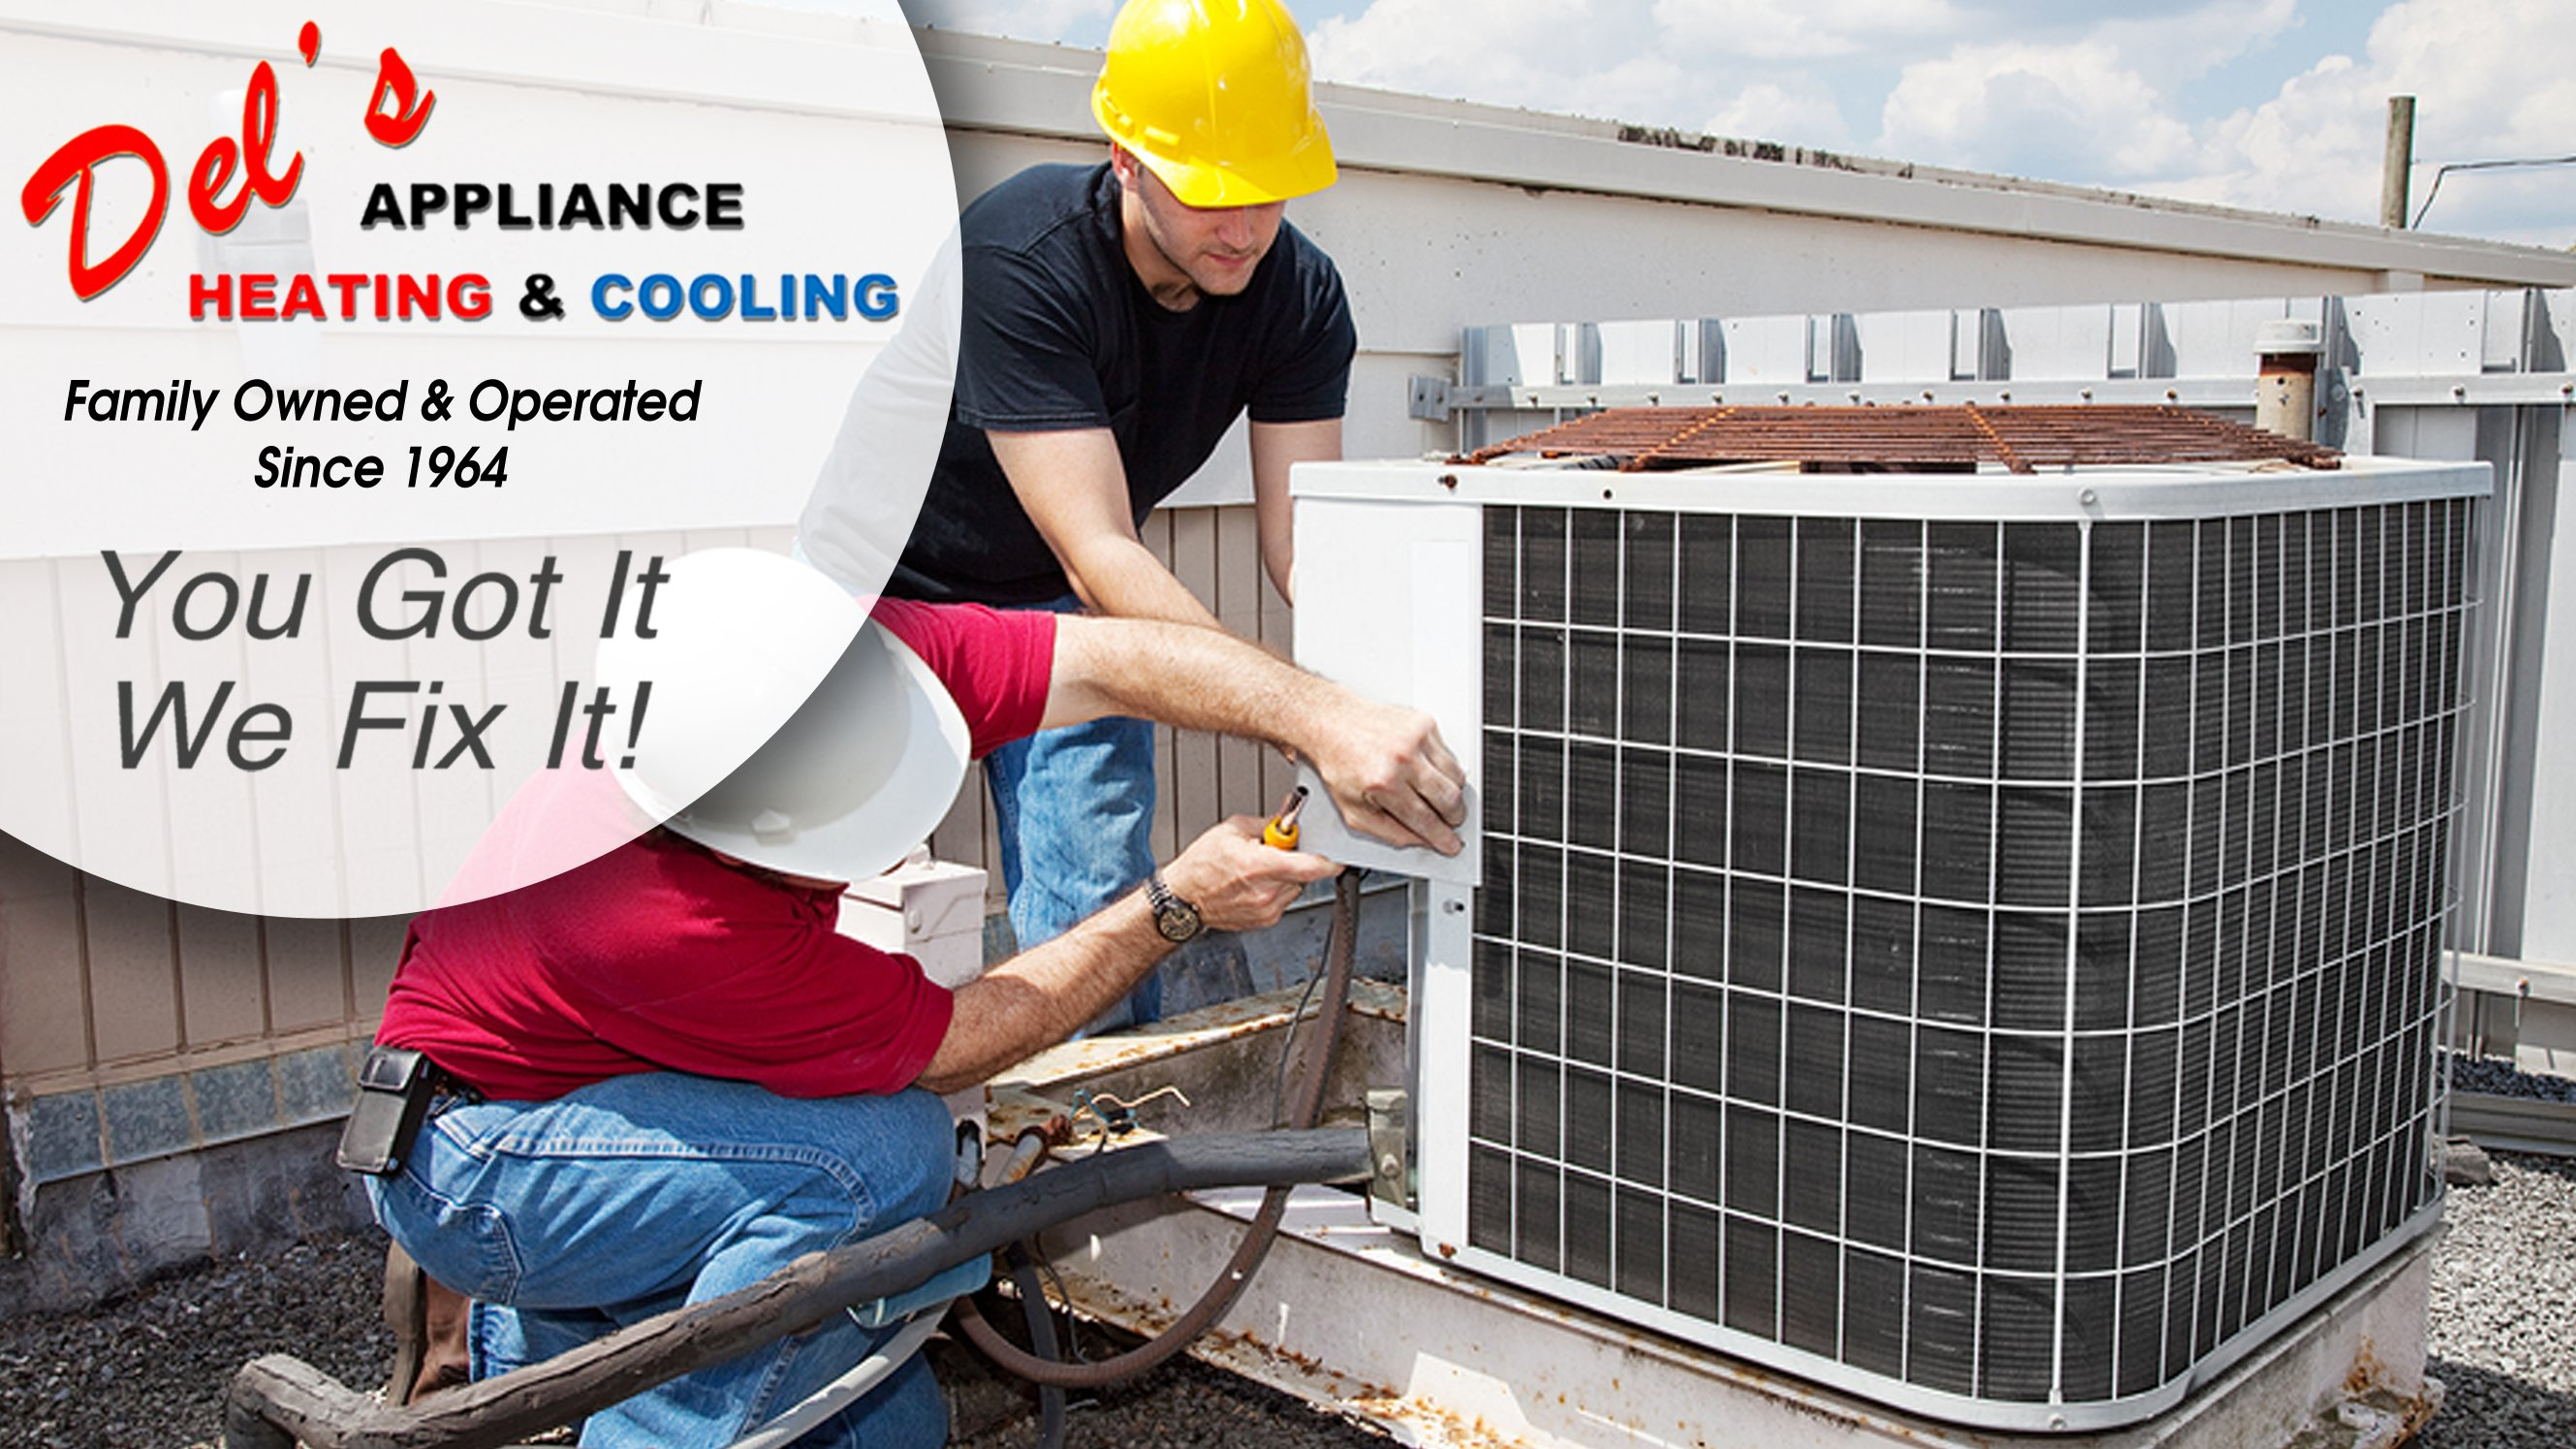 Del's Appliance Heating & Cooling Logo.  Family owned & operated since 1964. You Got It We Fix It.  Our team working on a commercial HVAC repair.